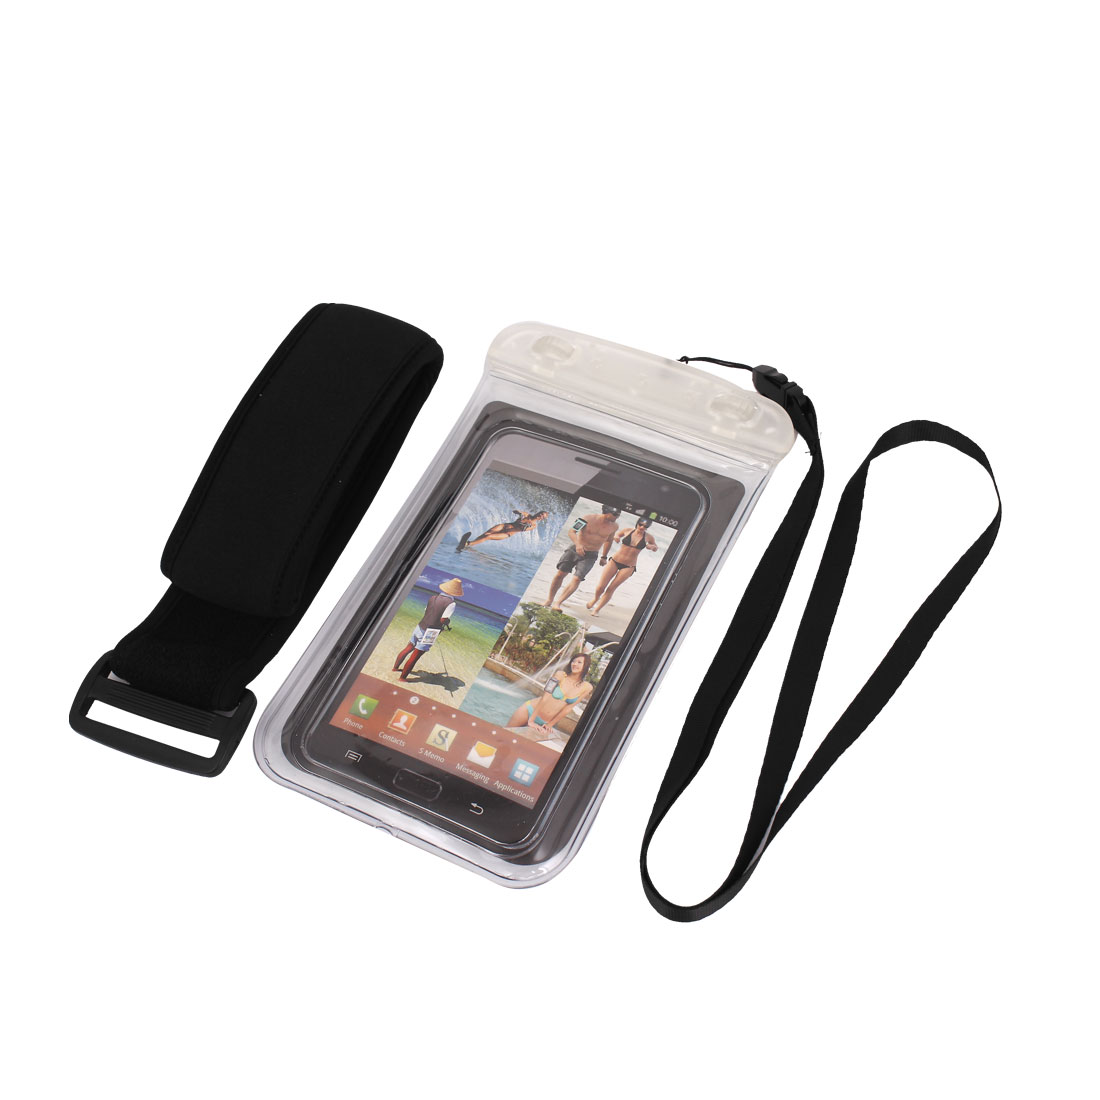 "Underwater Waterproof Case Dry Bag Skin Cover Pouch Clear for 5.5"" Cell Phone"